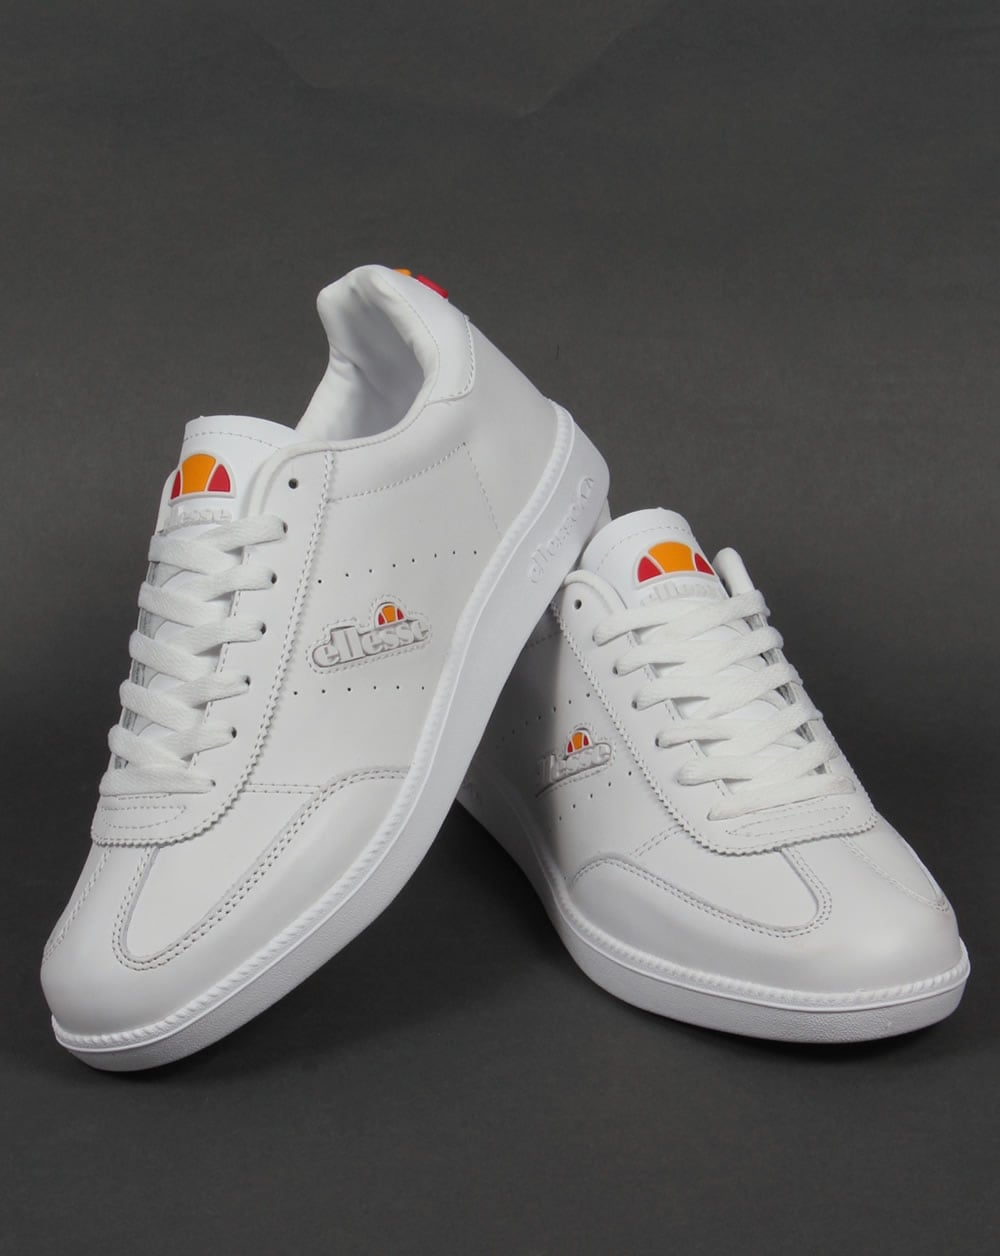 Casual Shoes Online Shopping At Low Price